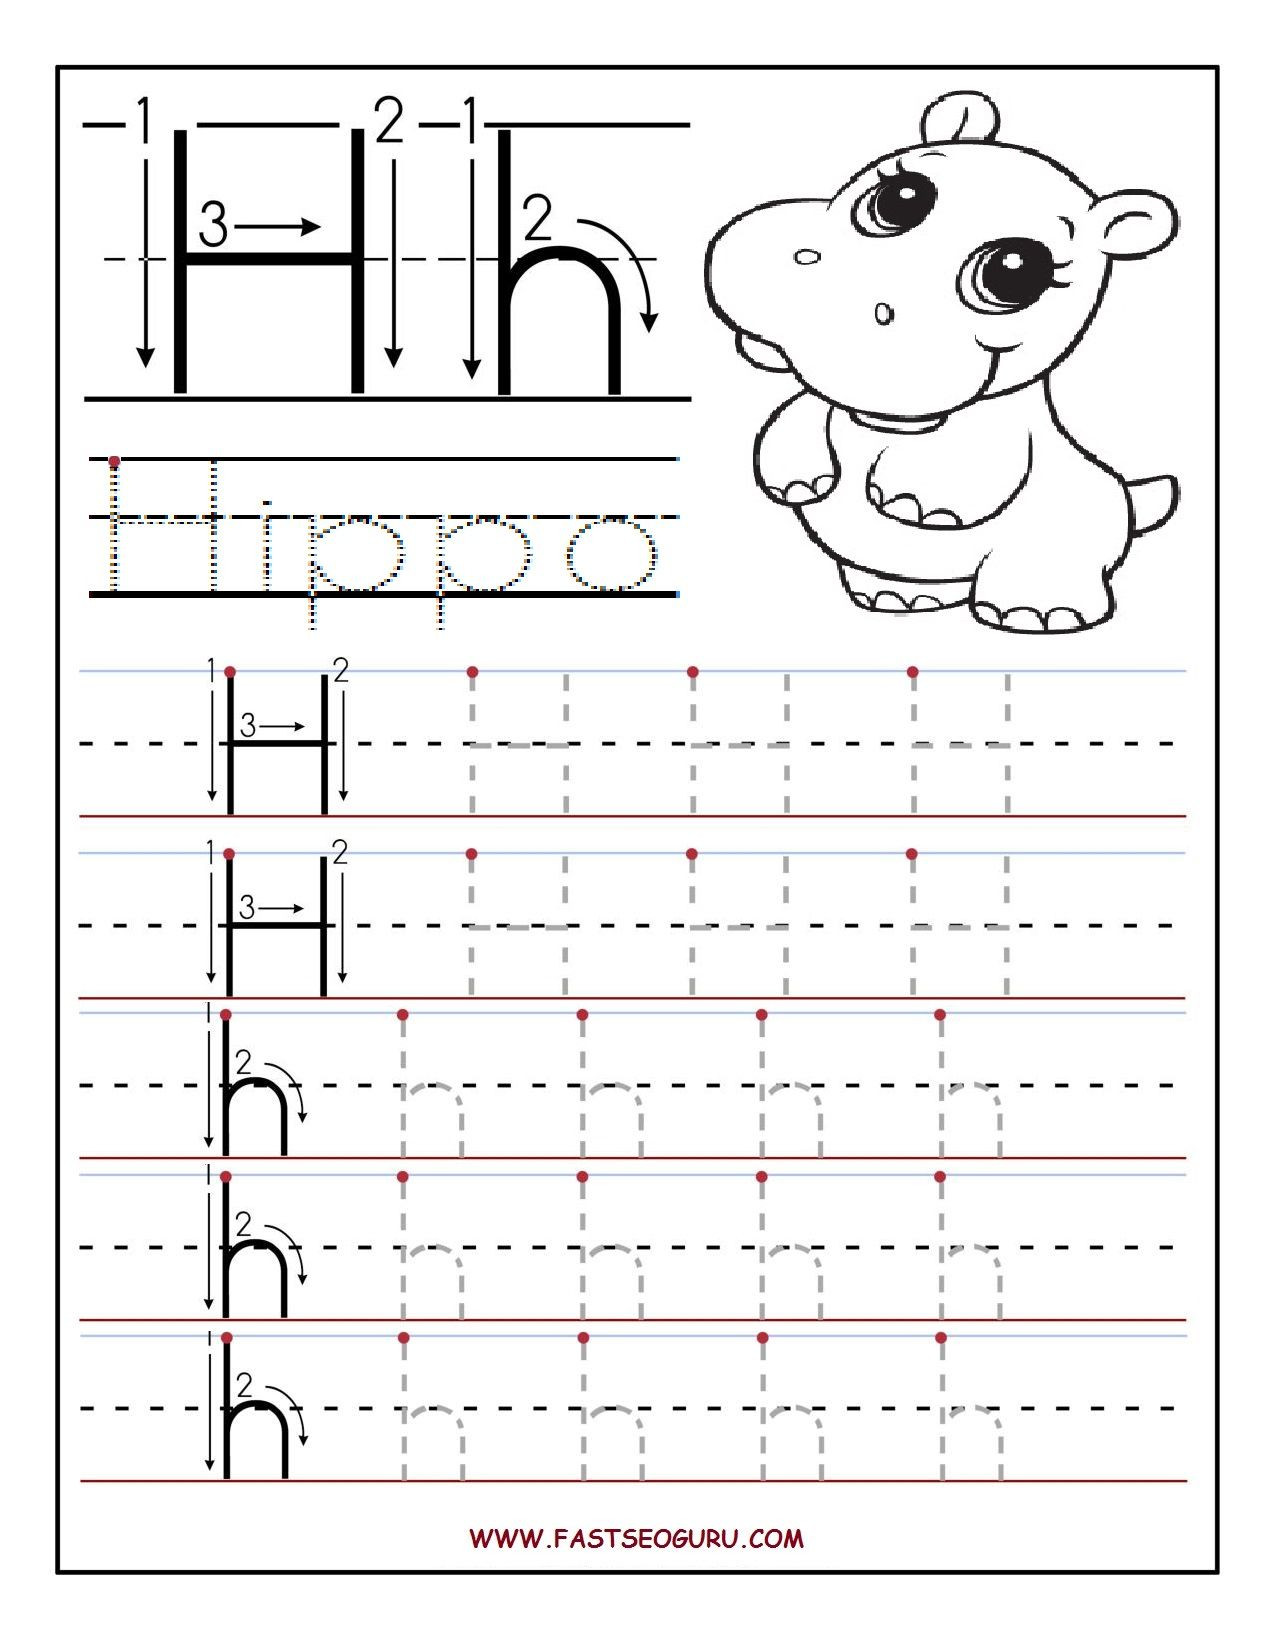 Letter H Worksheets for Preschool Printable Letter H Tracing Worksheets for Preschool